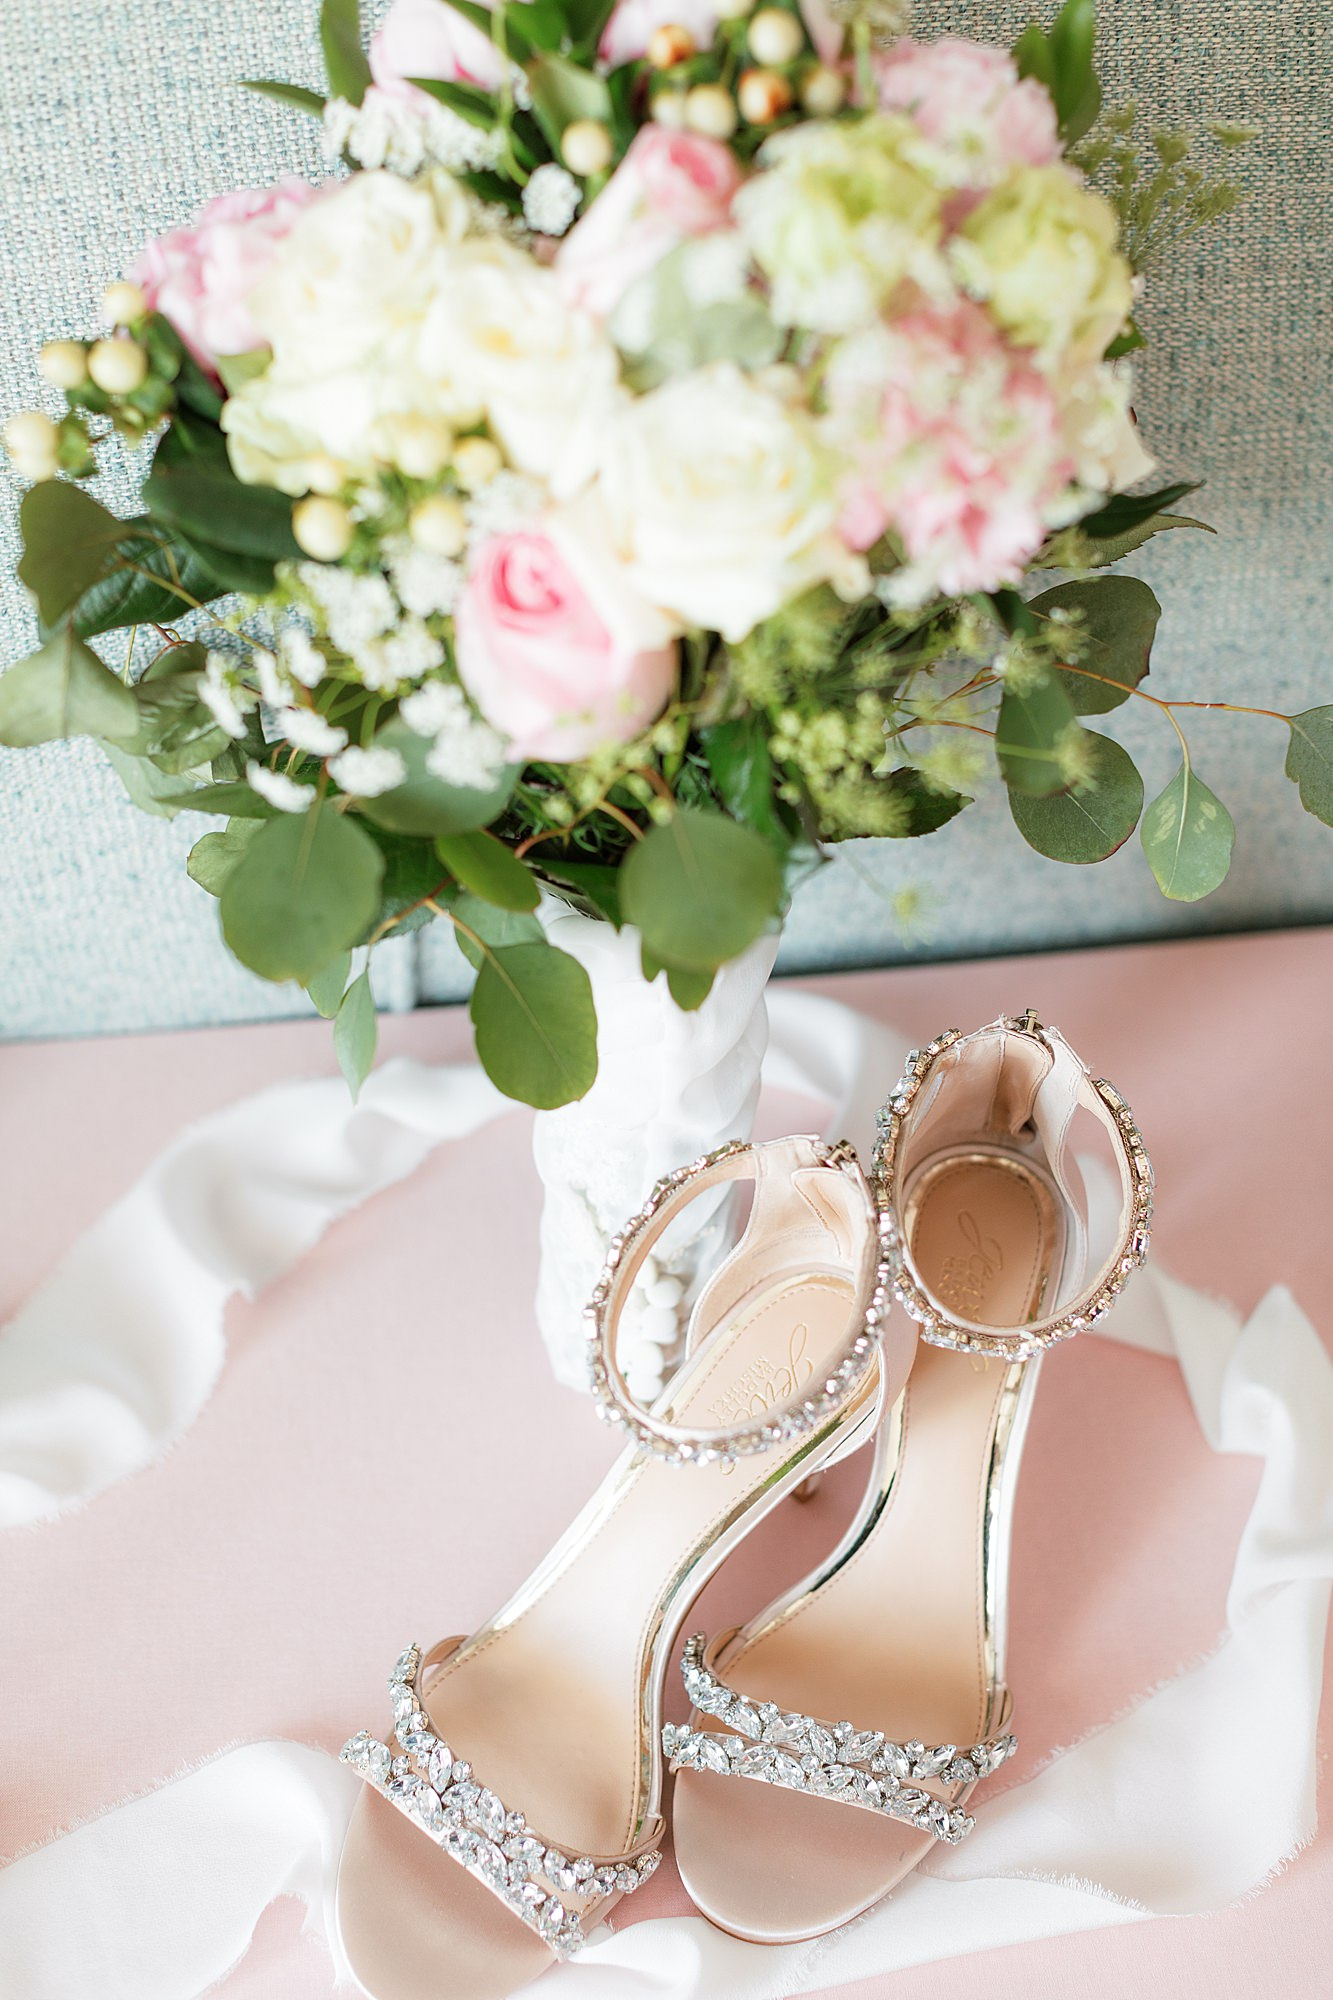 Natural and Vibrant Wedding Photography at the Reeds in Stone Harbor NJ by Magdalena Studios 0004